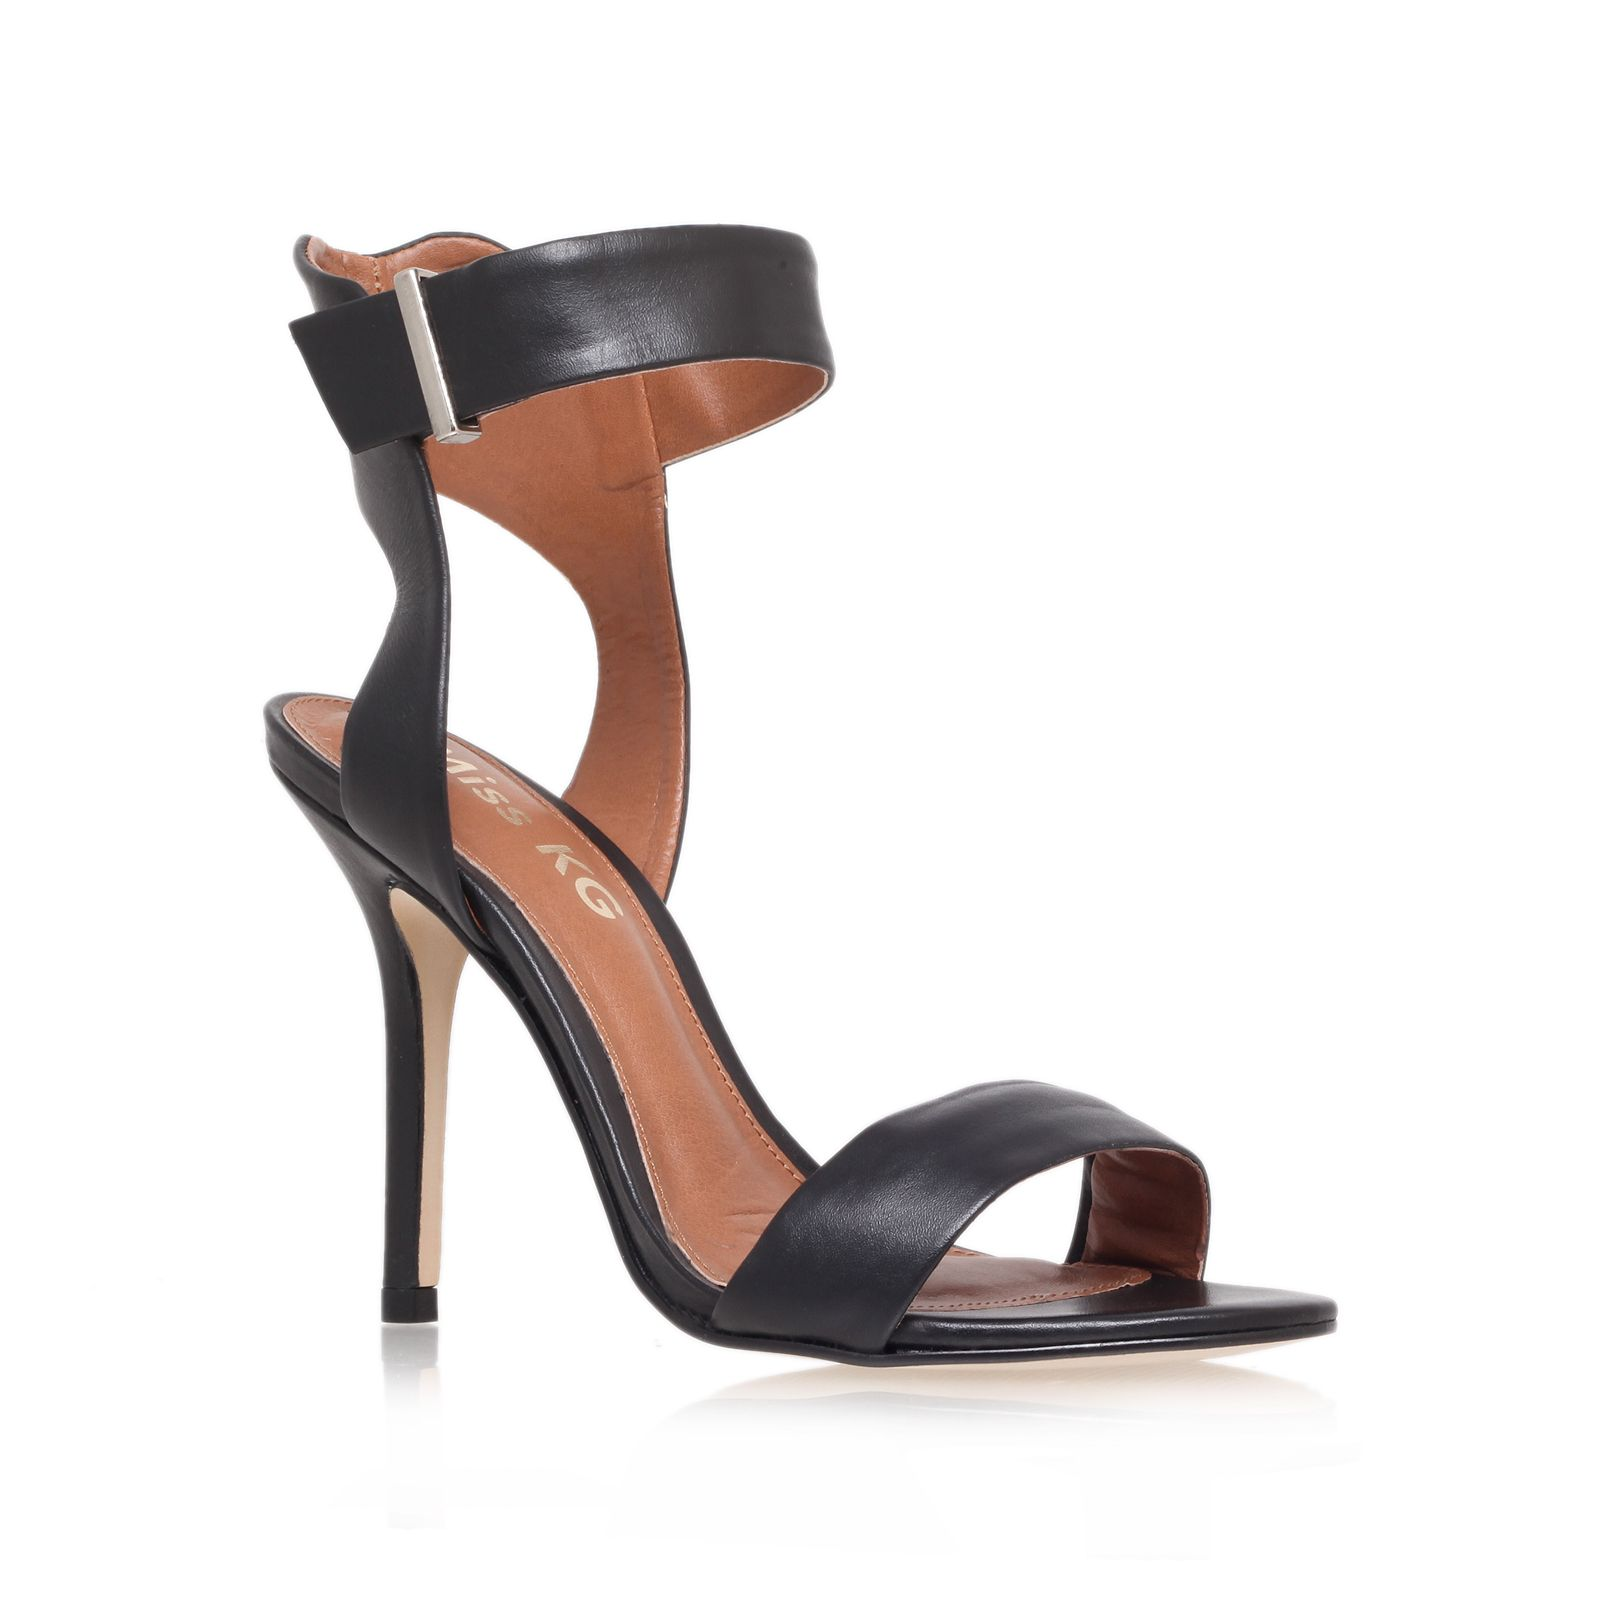 Eva high heel sandals